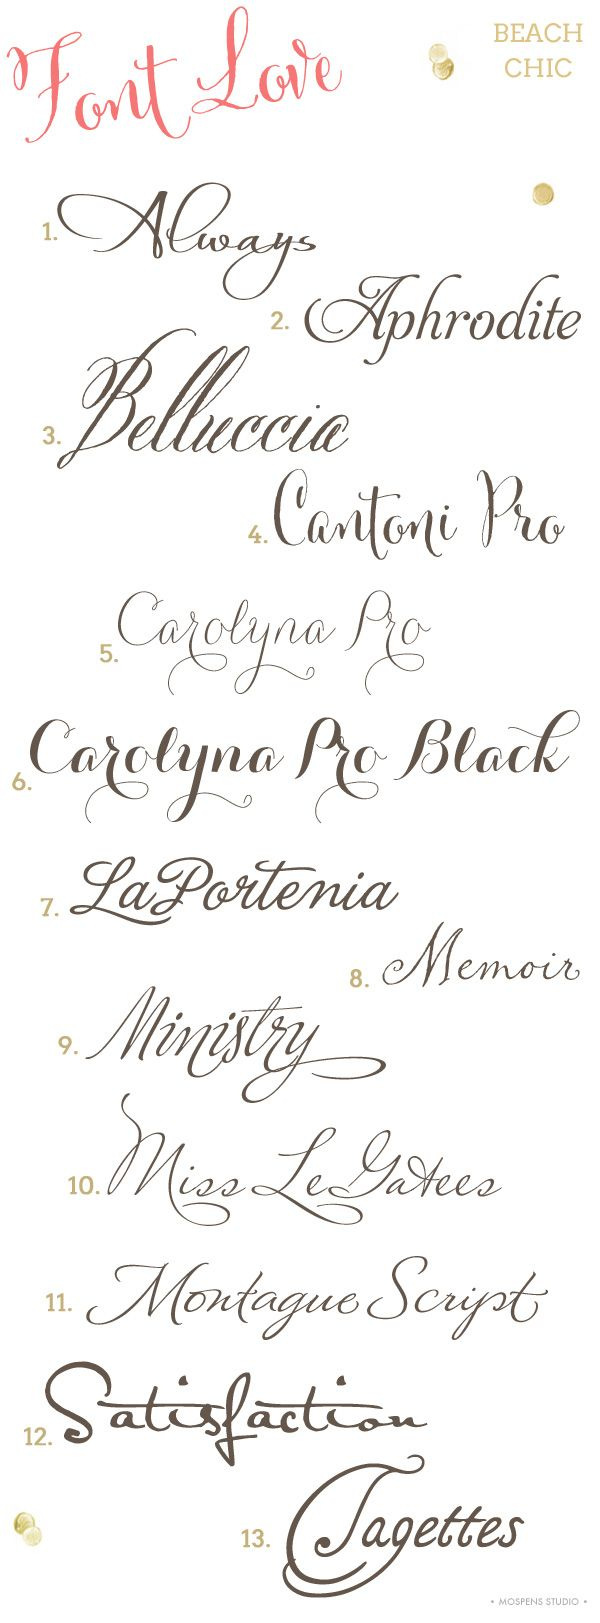 Beach Chic Wedding Invitation Fonts | Tattoo | Pinterest | Wedding ...